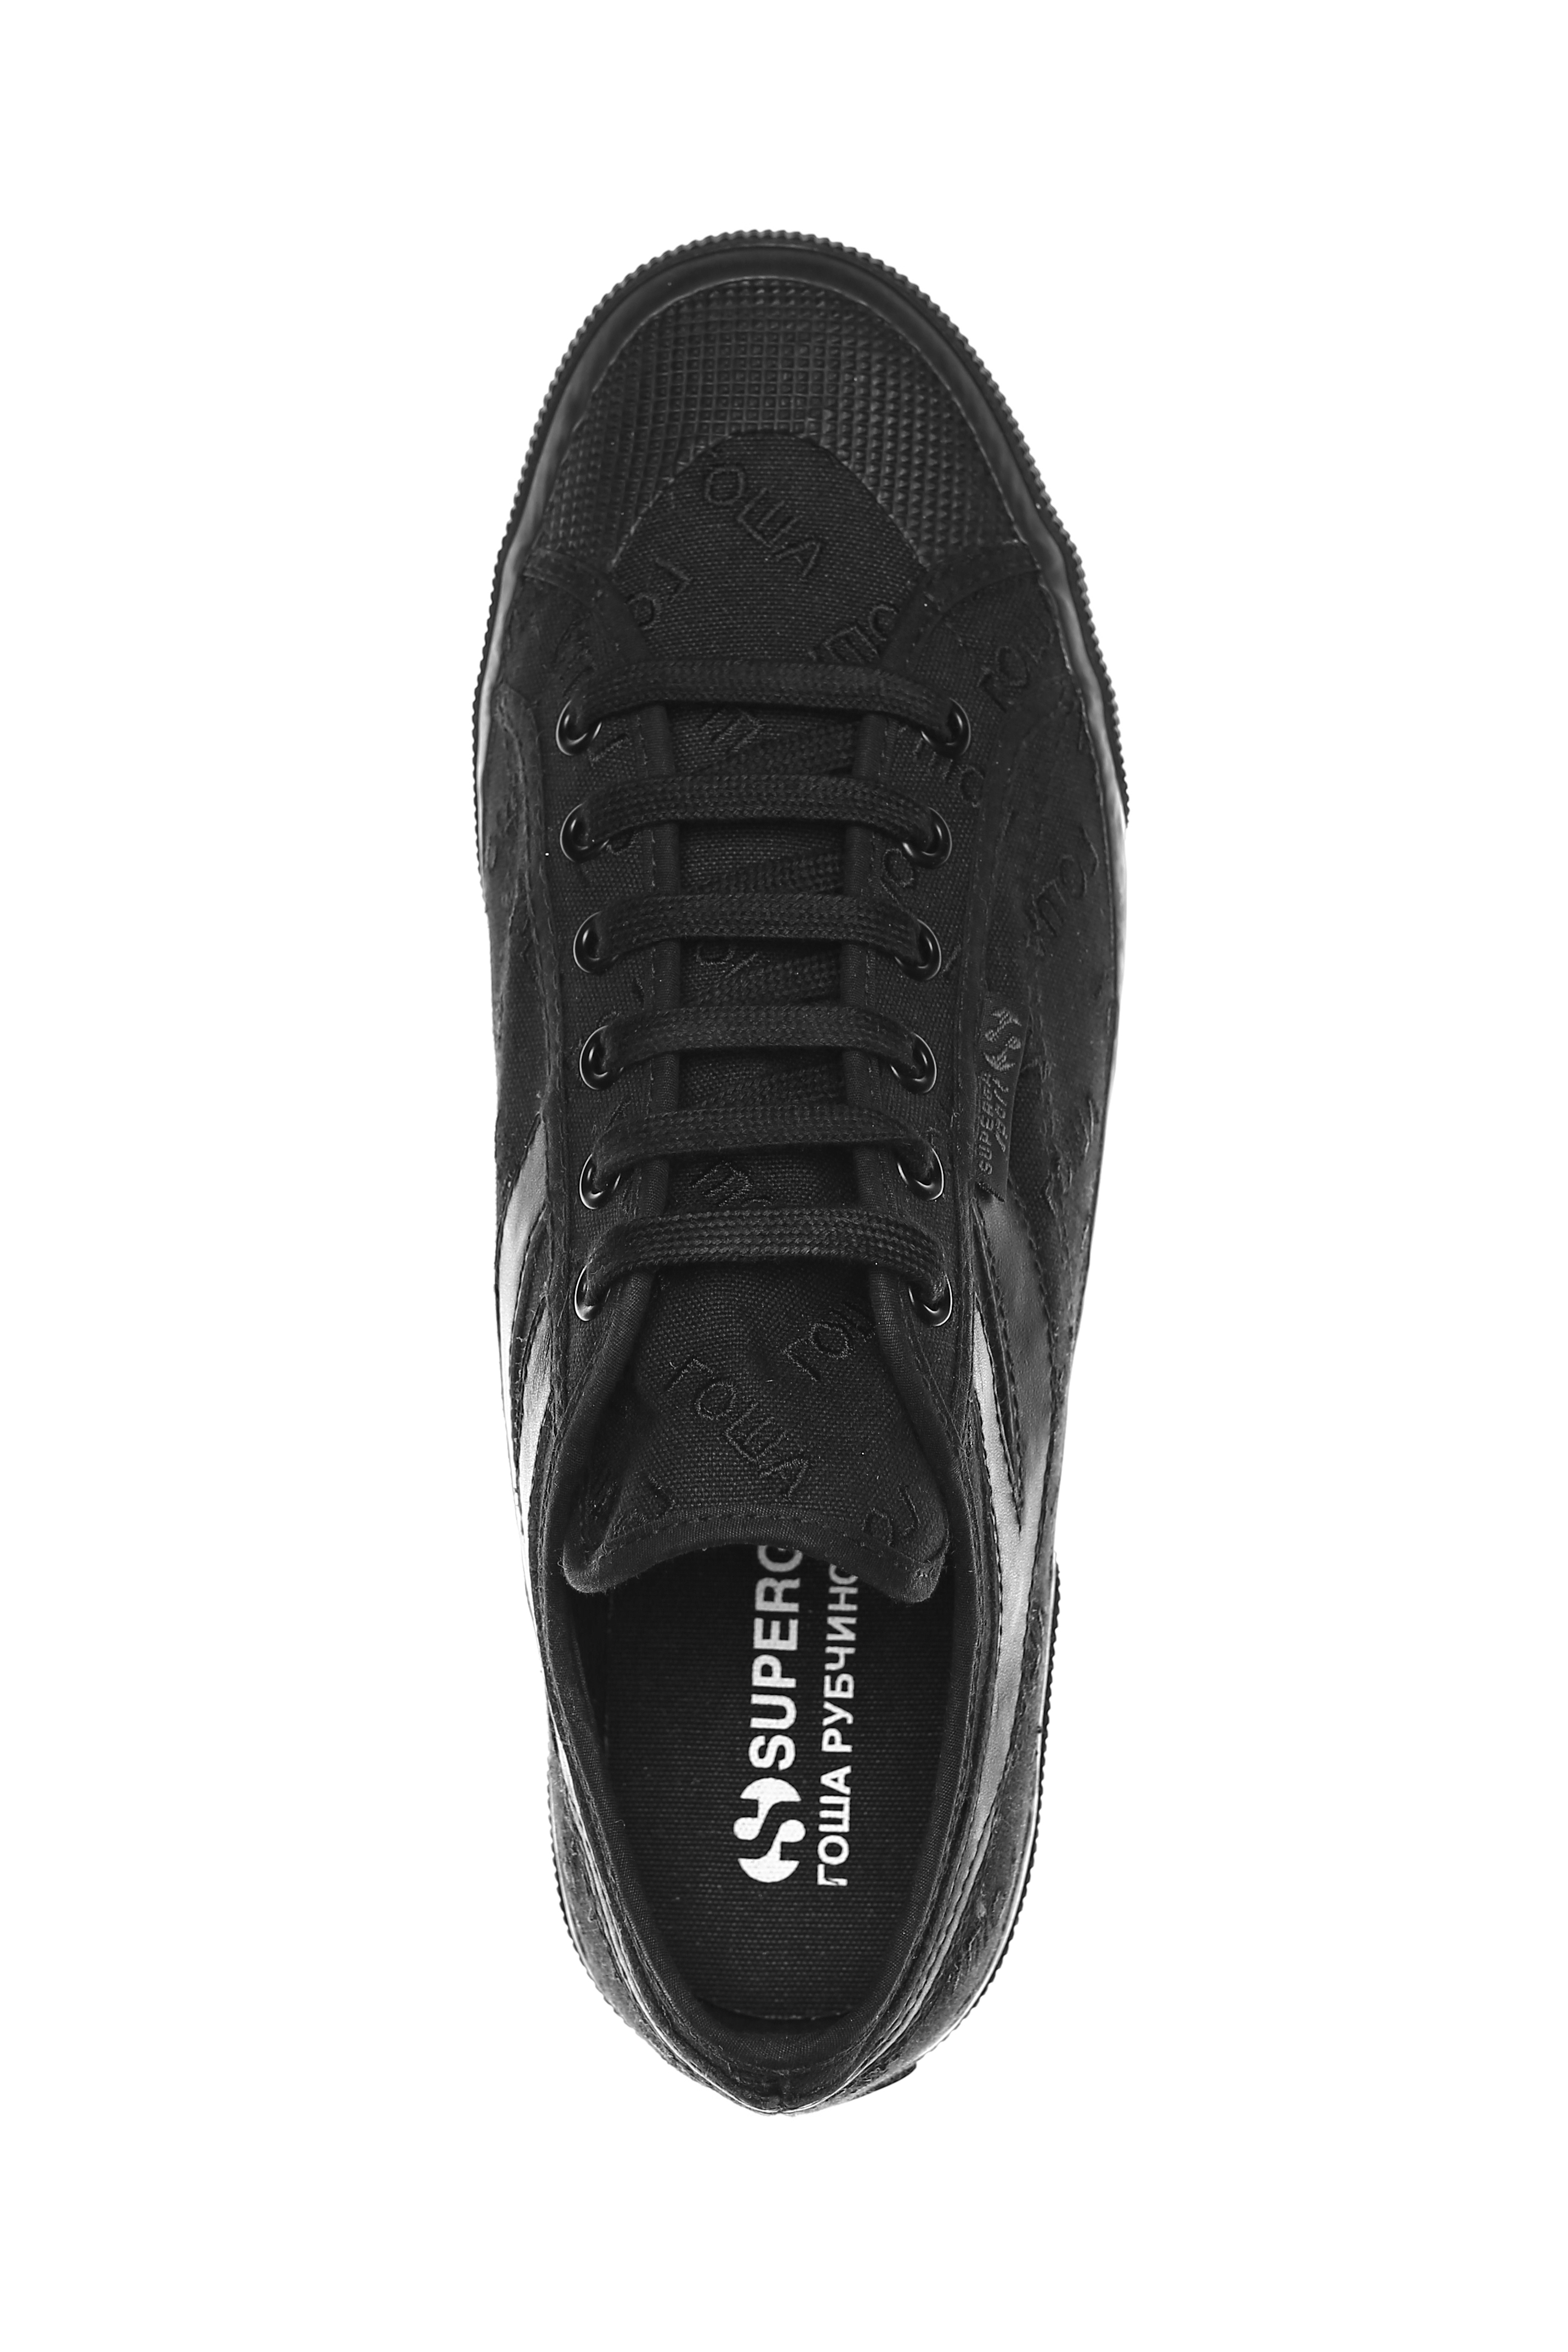 superga-gosha-rubchinskiy-low-top_2